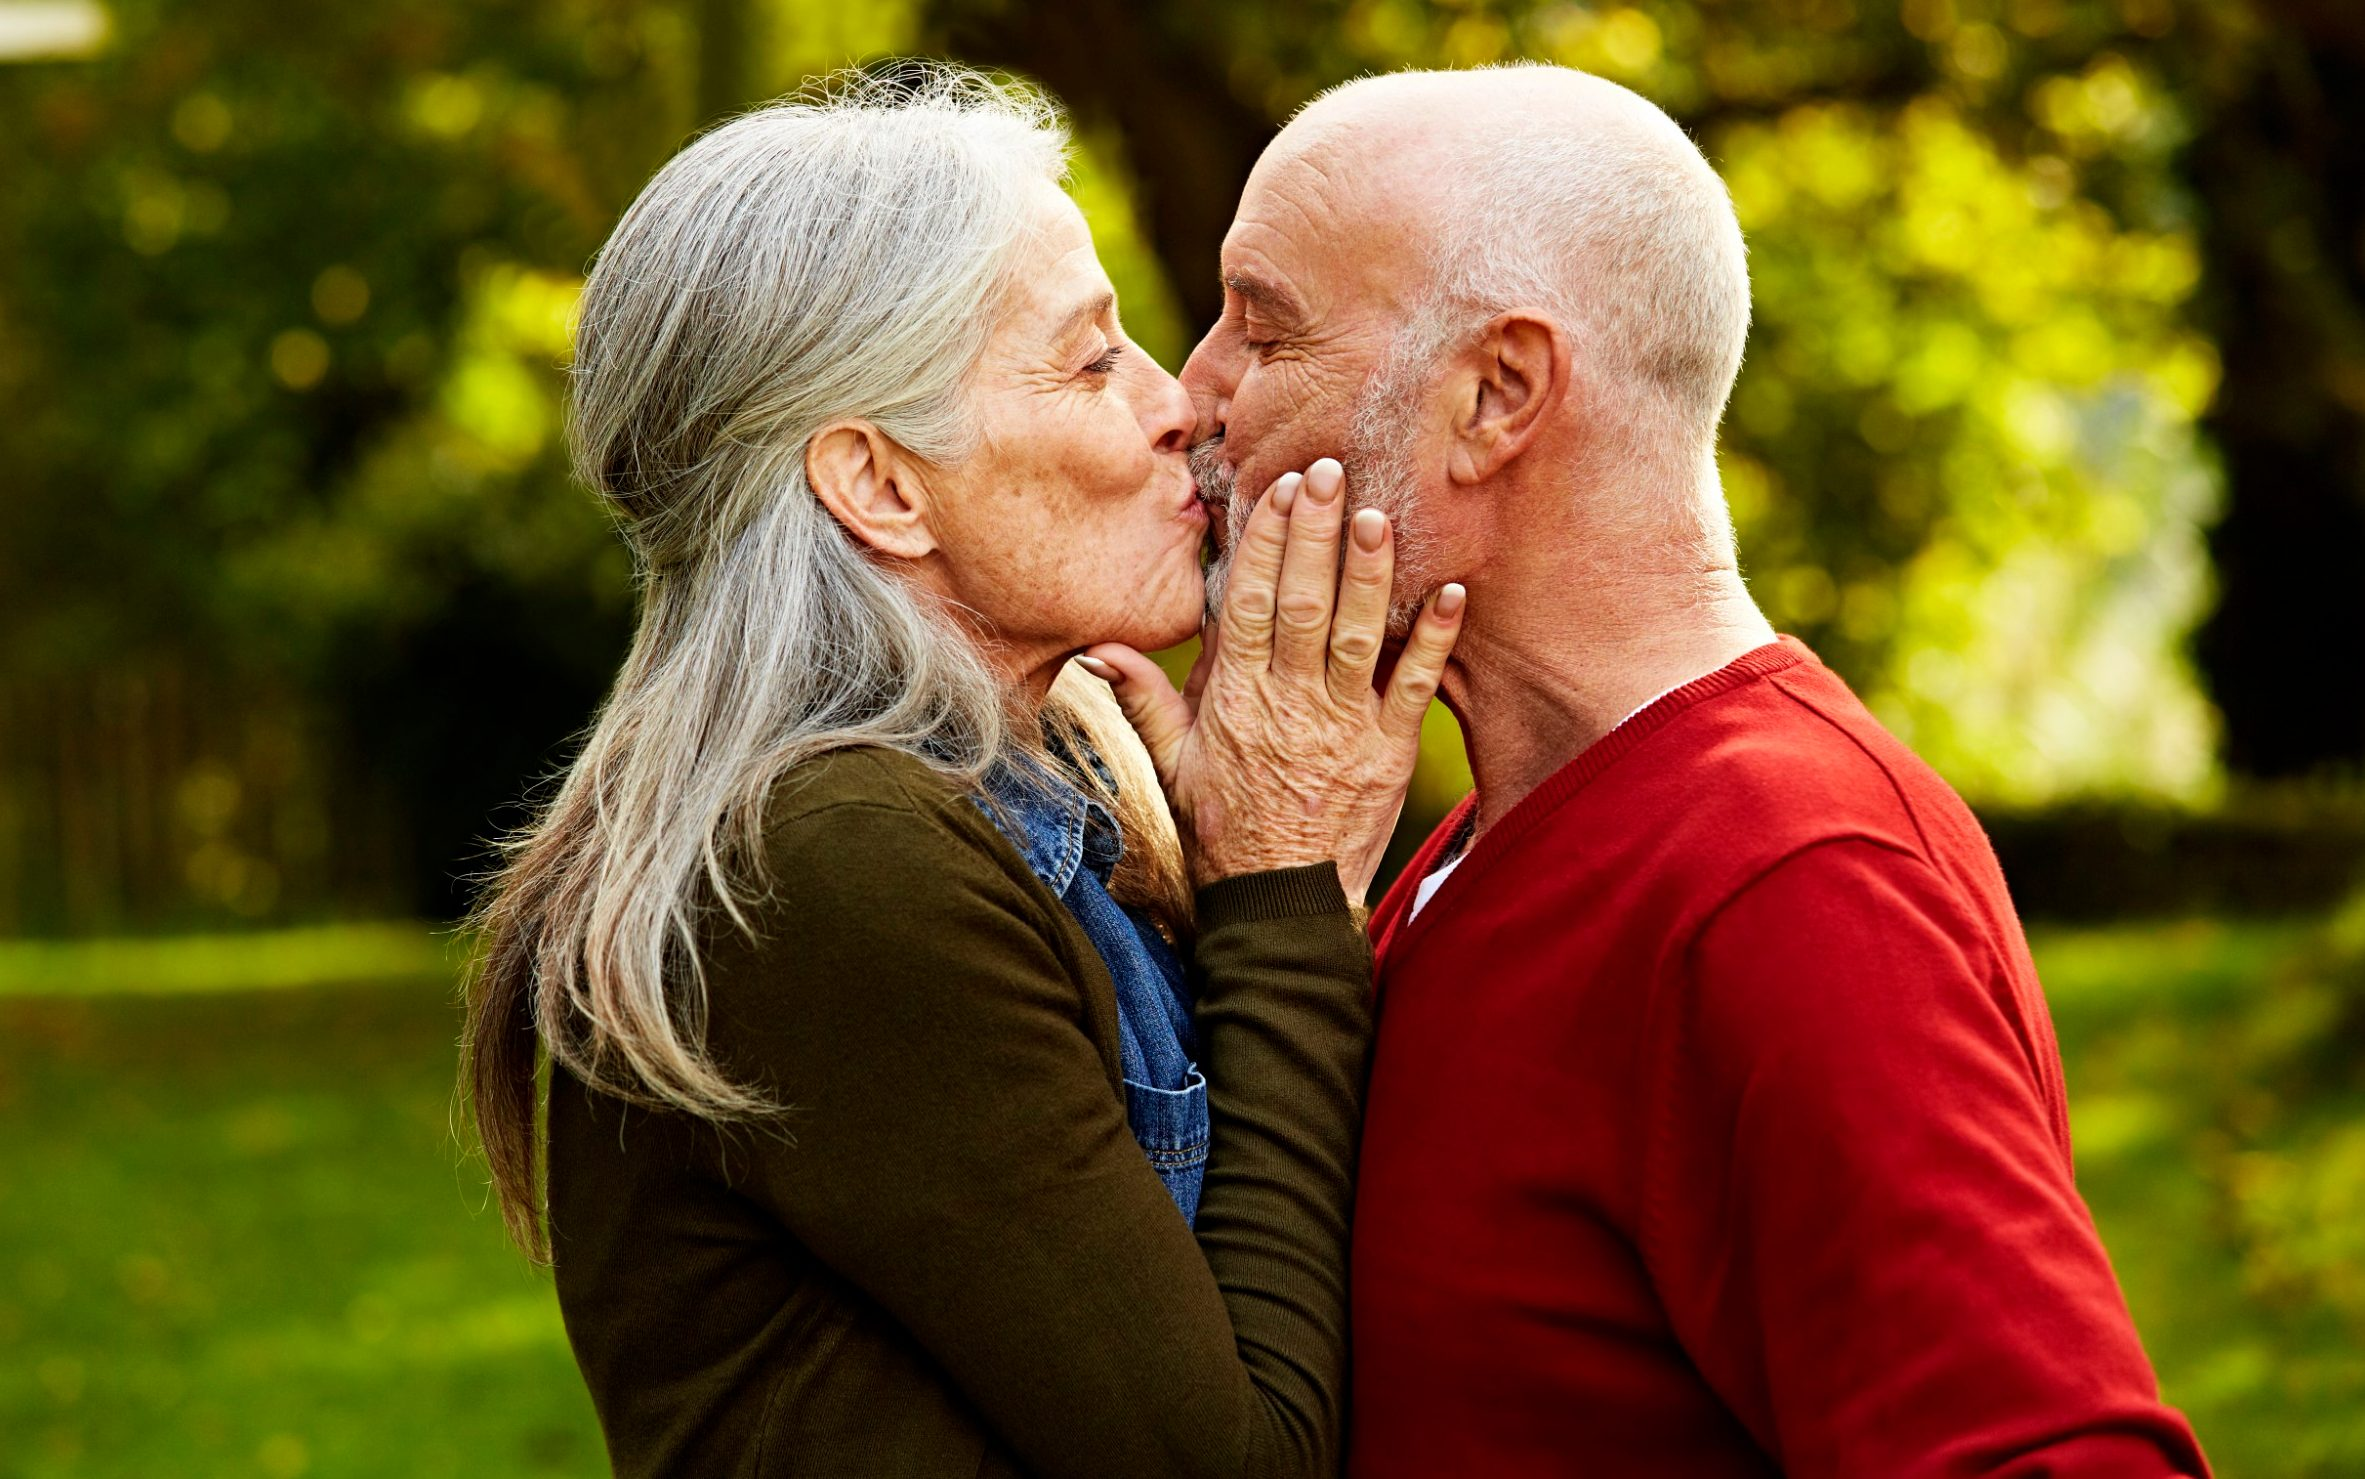 Over 50 s dating